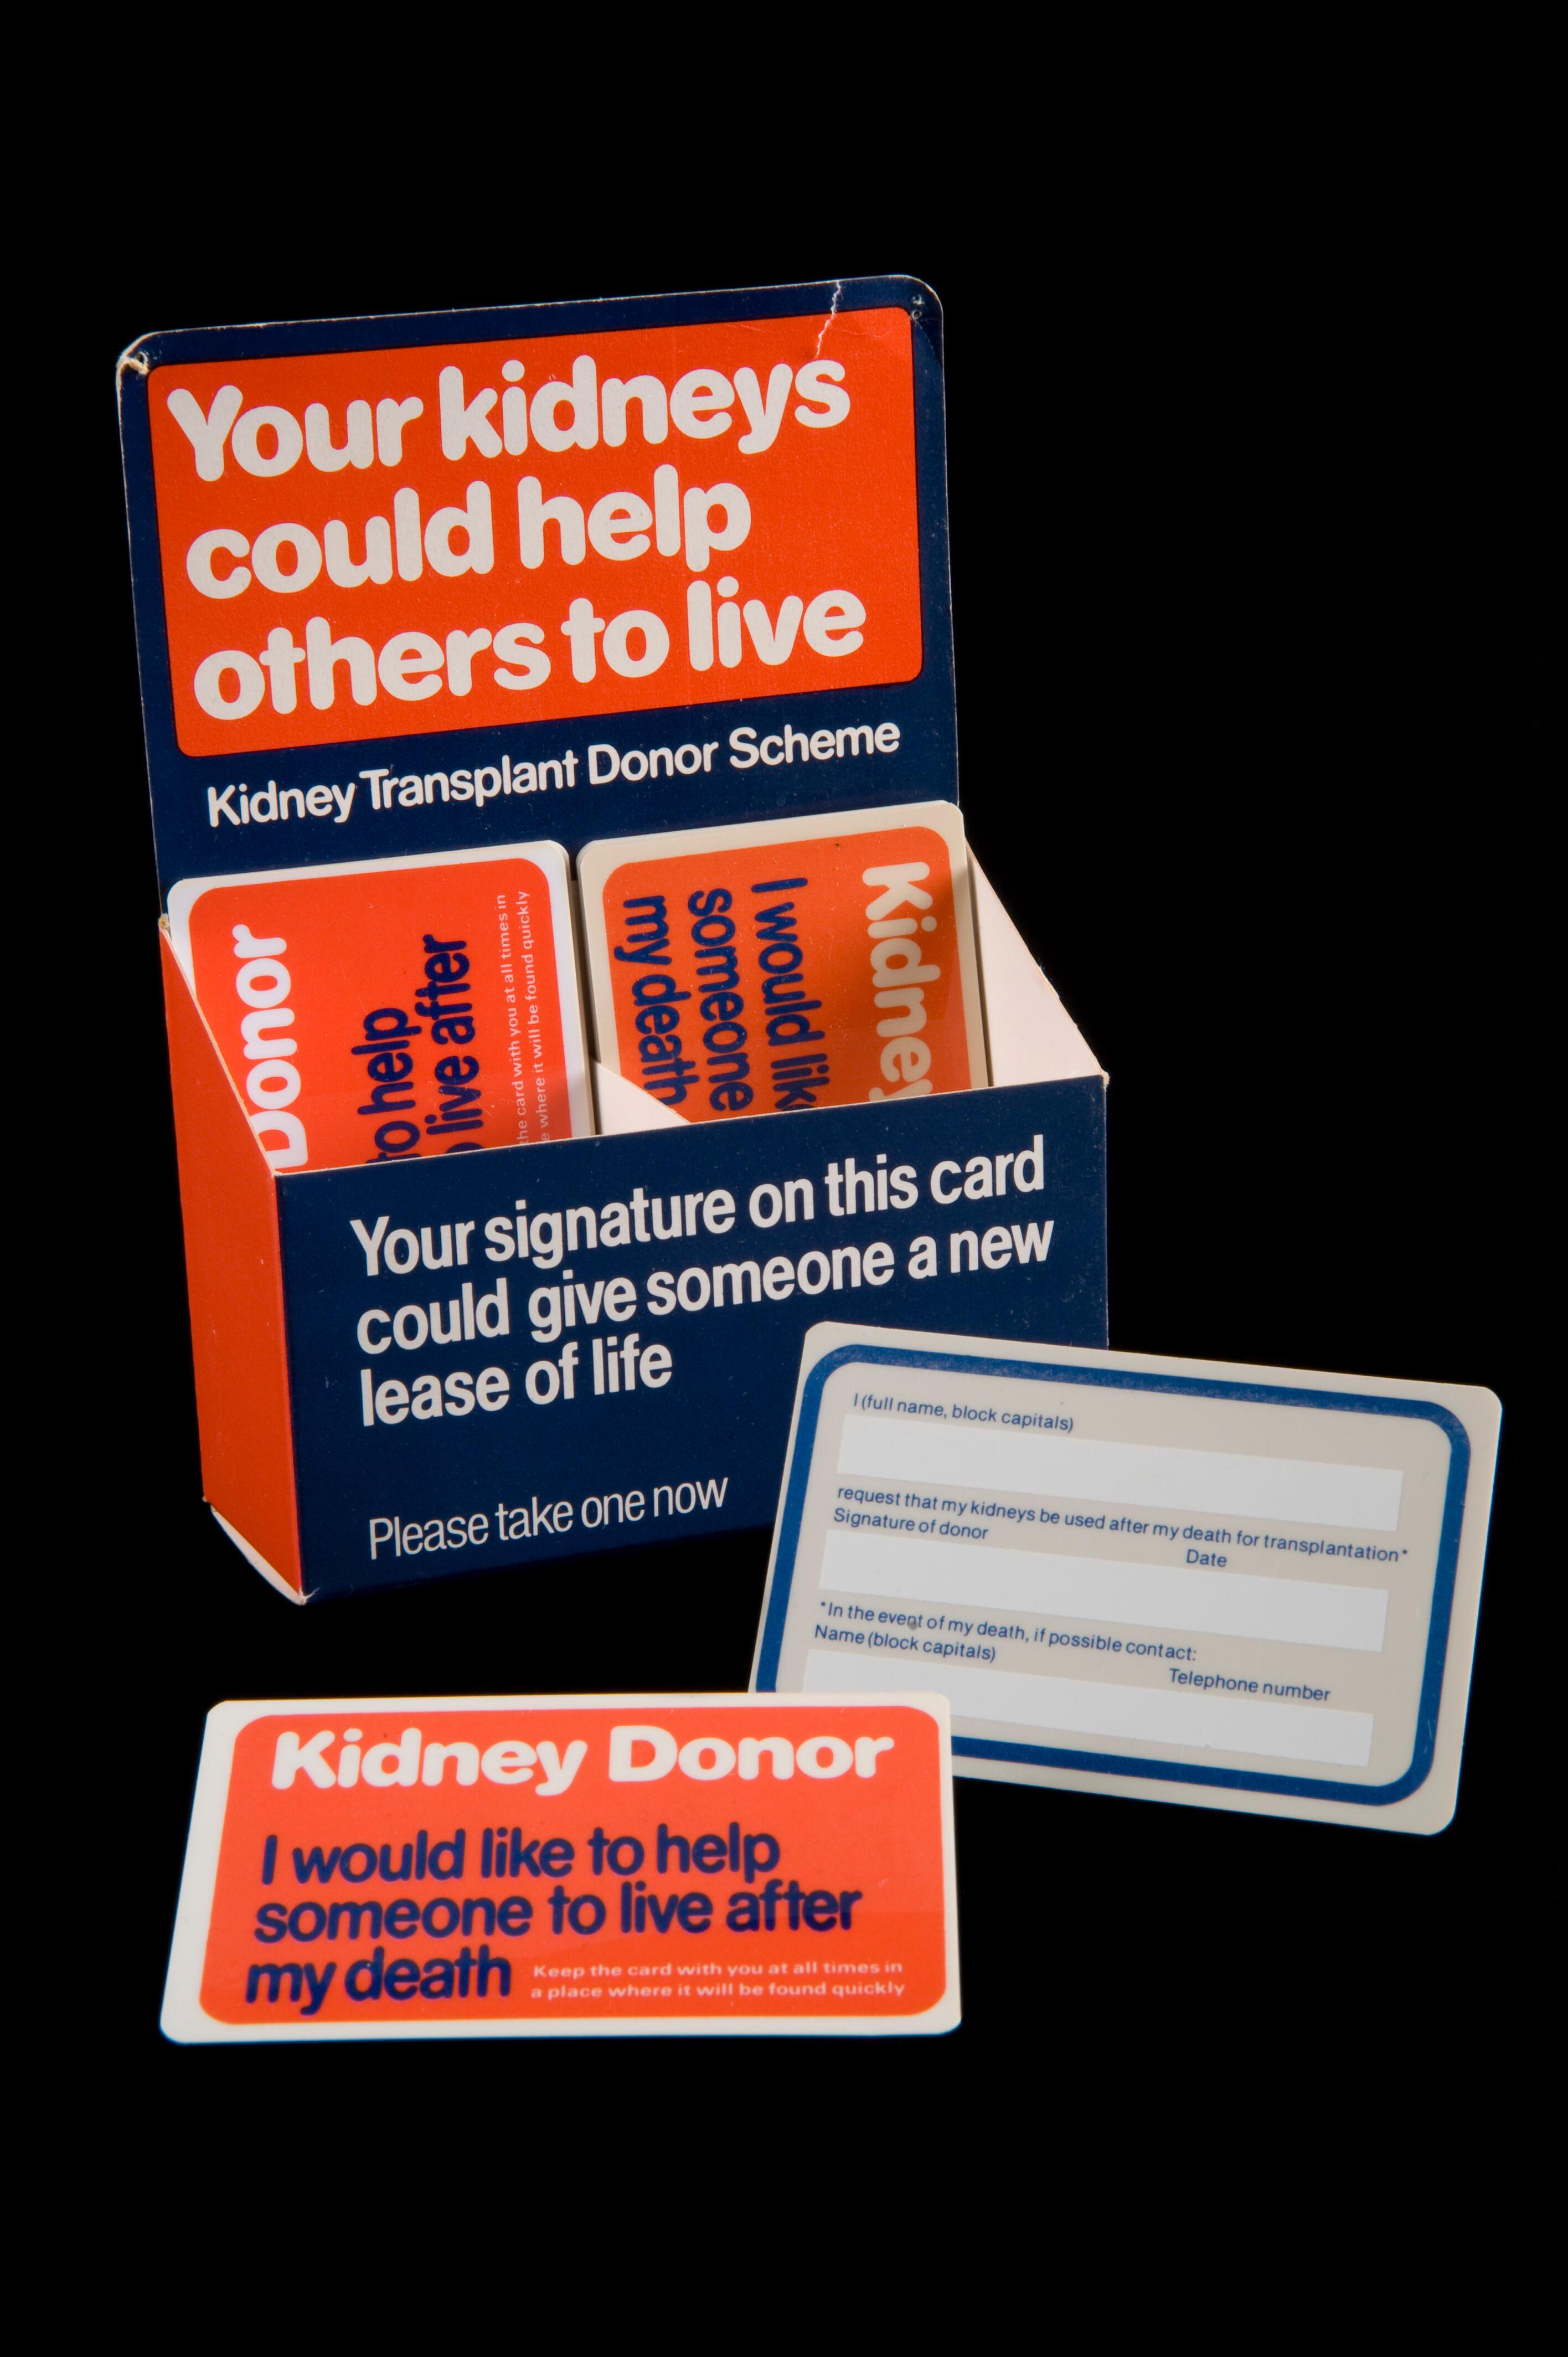 Kidney donor cards, England, 1971-1981 | Wellcome Collection